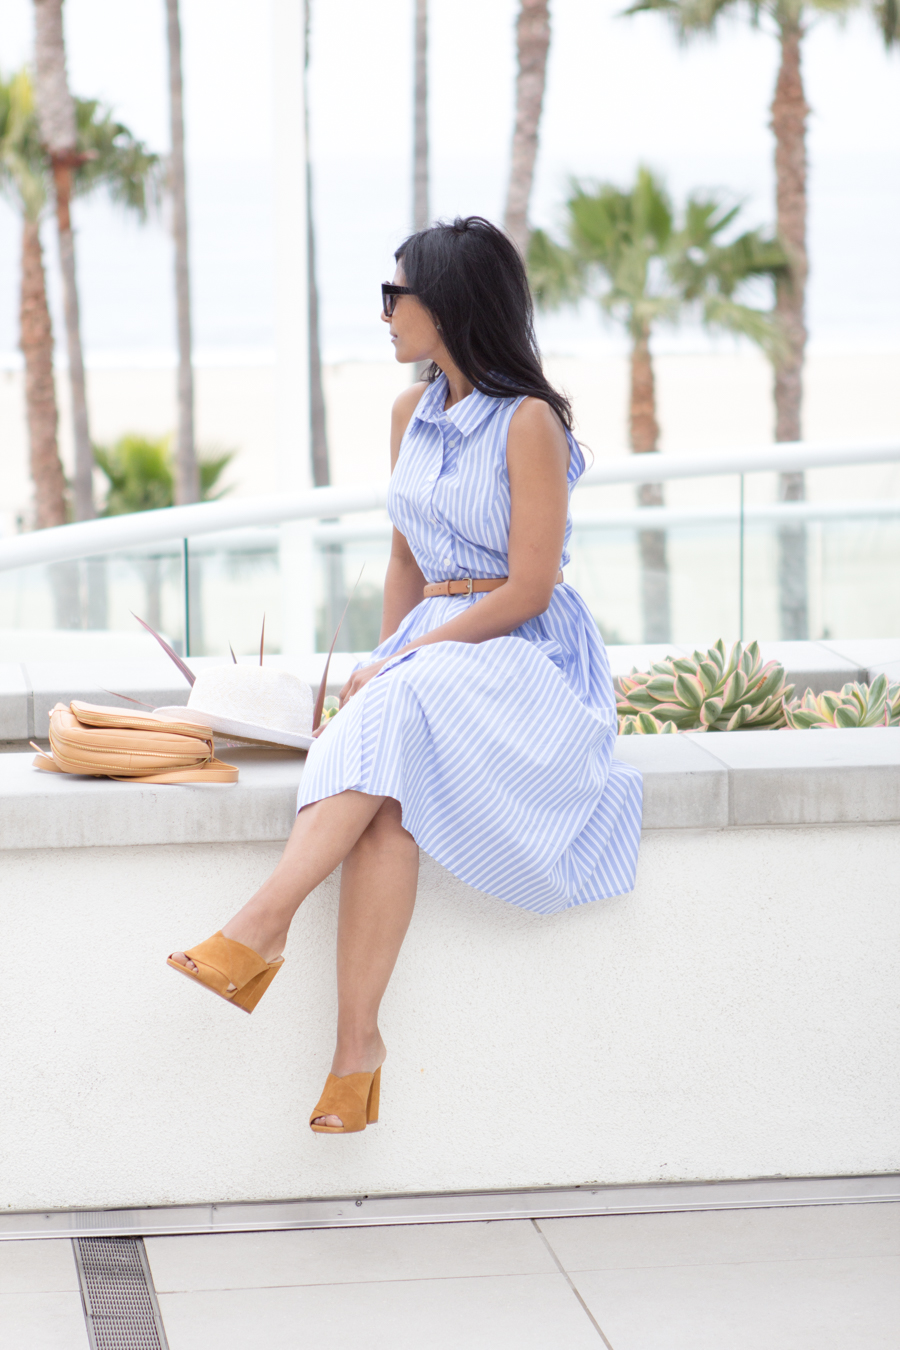 vacation wear, holiday dressing, poolside with cocktails, relaxed dressing, chic dress, belted dress, shirtdress, panama hat, express runway, pearl earrings, stella mccartney, square sunglasses, beach views, palm tree views, mules, mustard slides, vince camuto